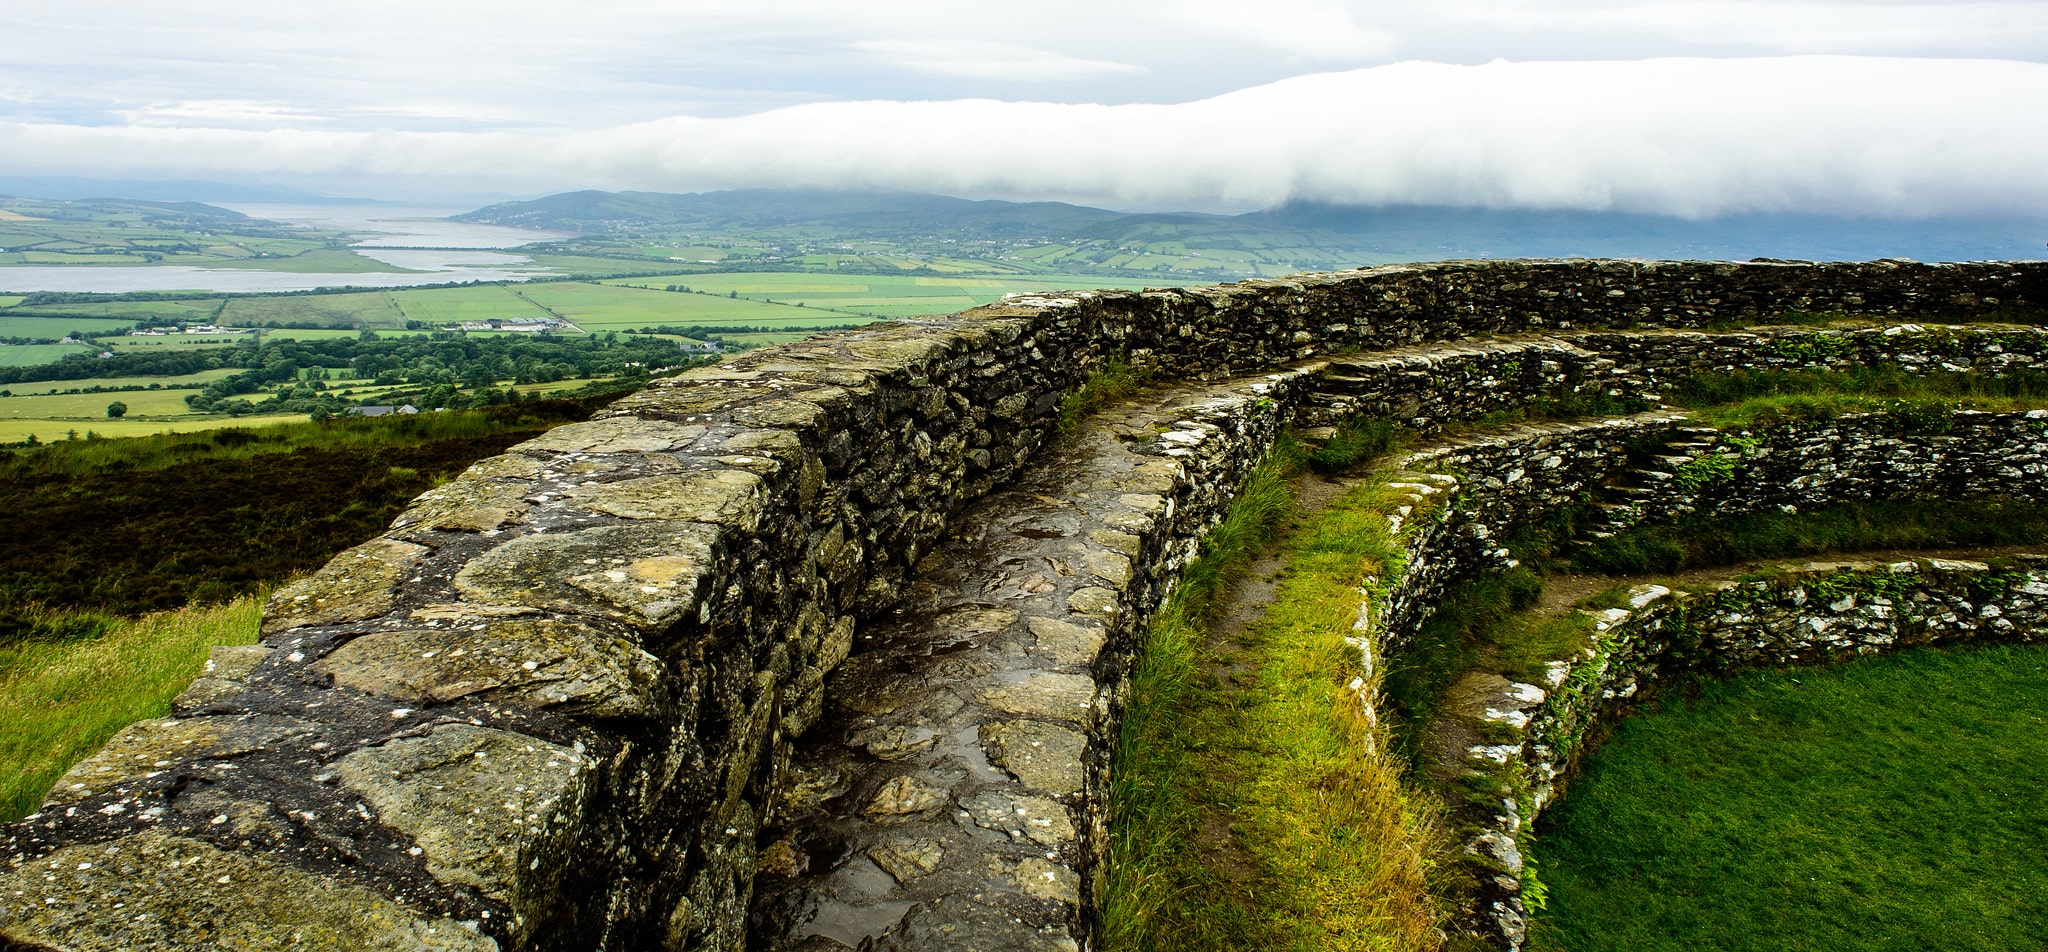 Exploring Grianan of Aileach is a cool thing to do in Ireland